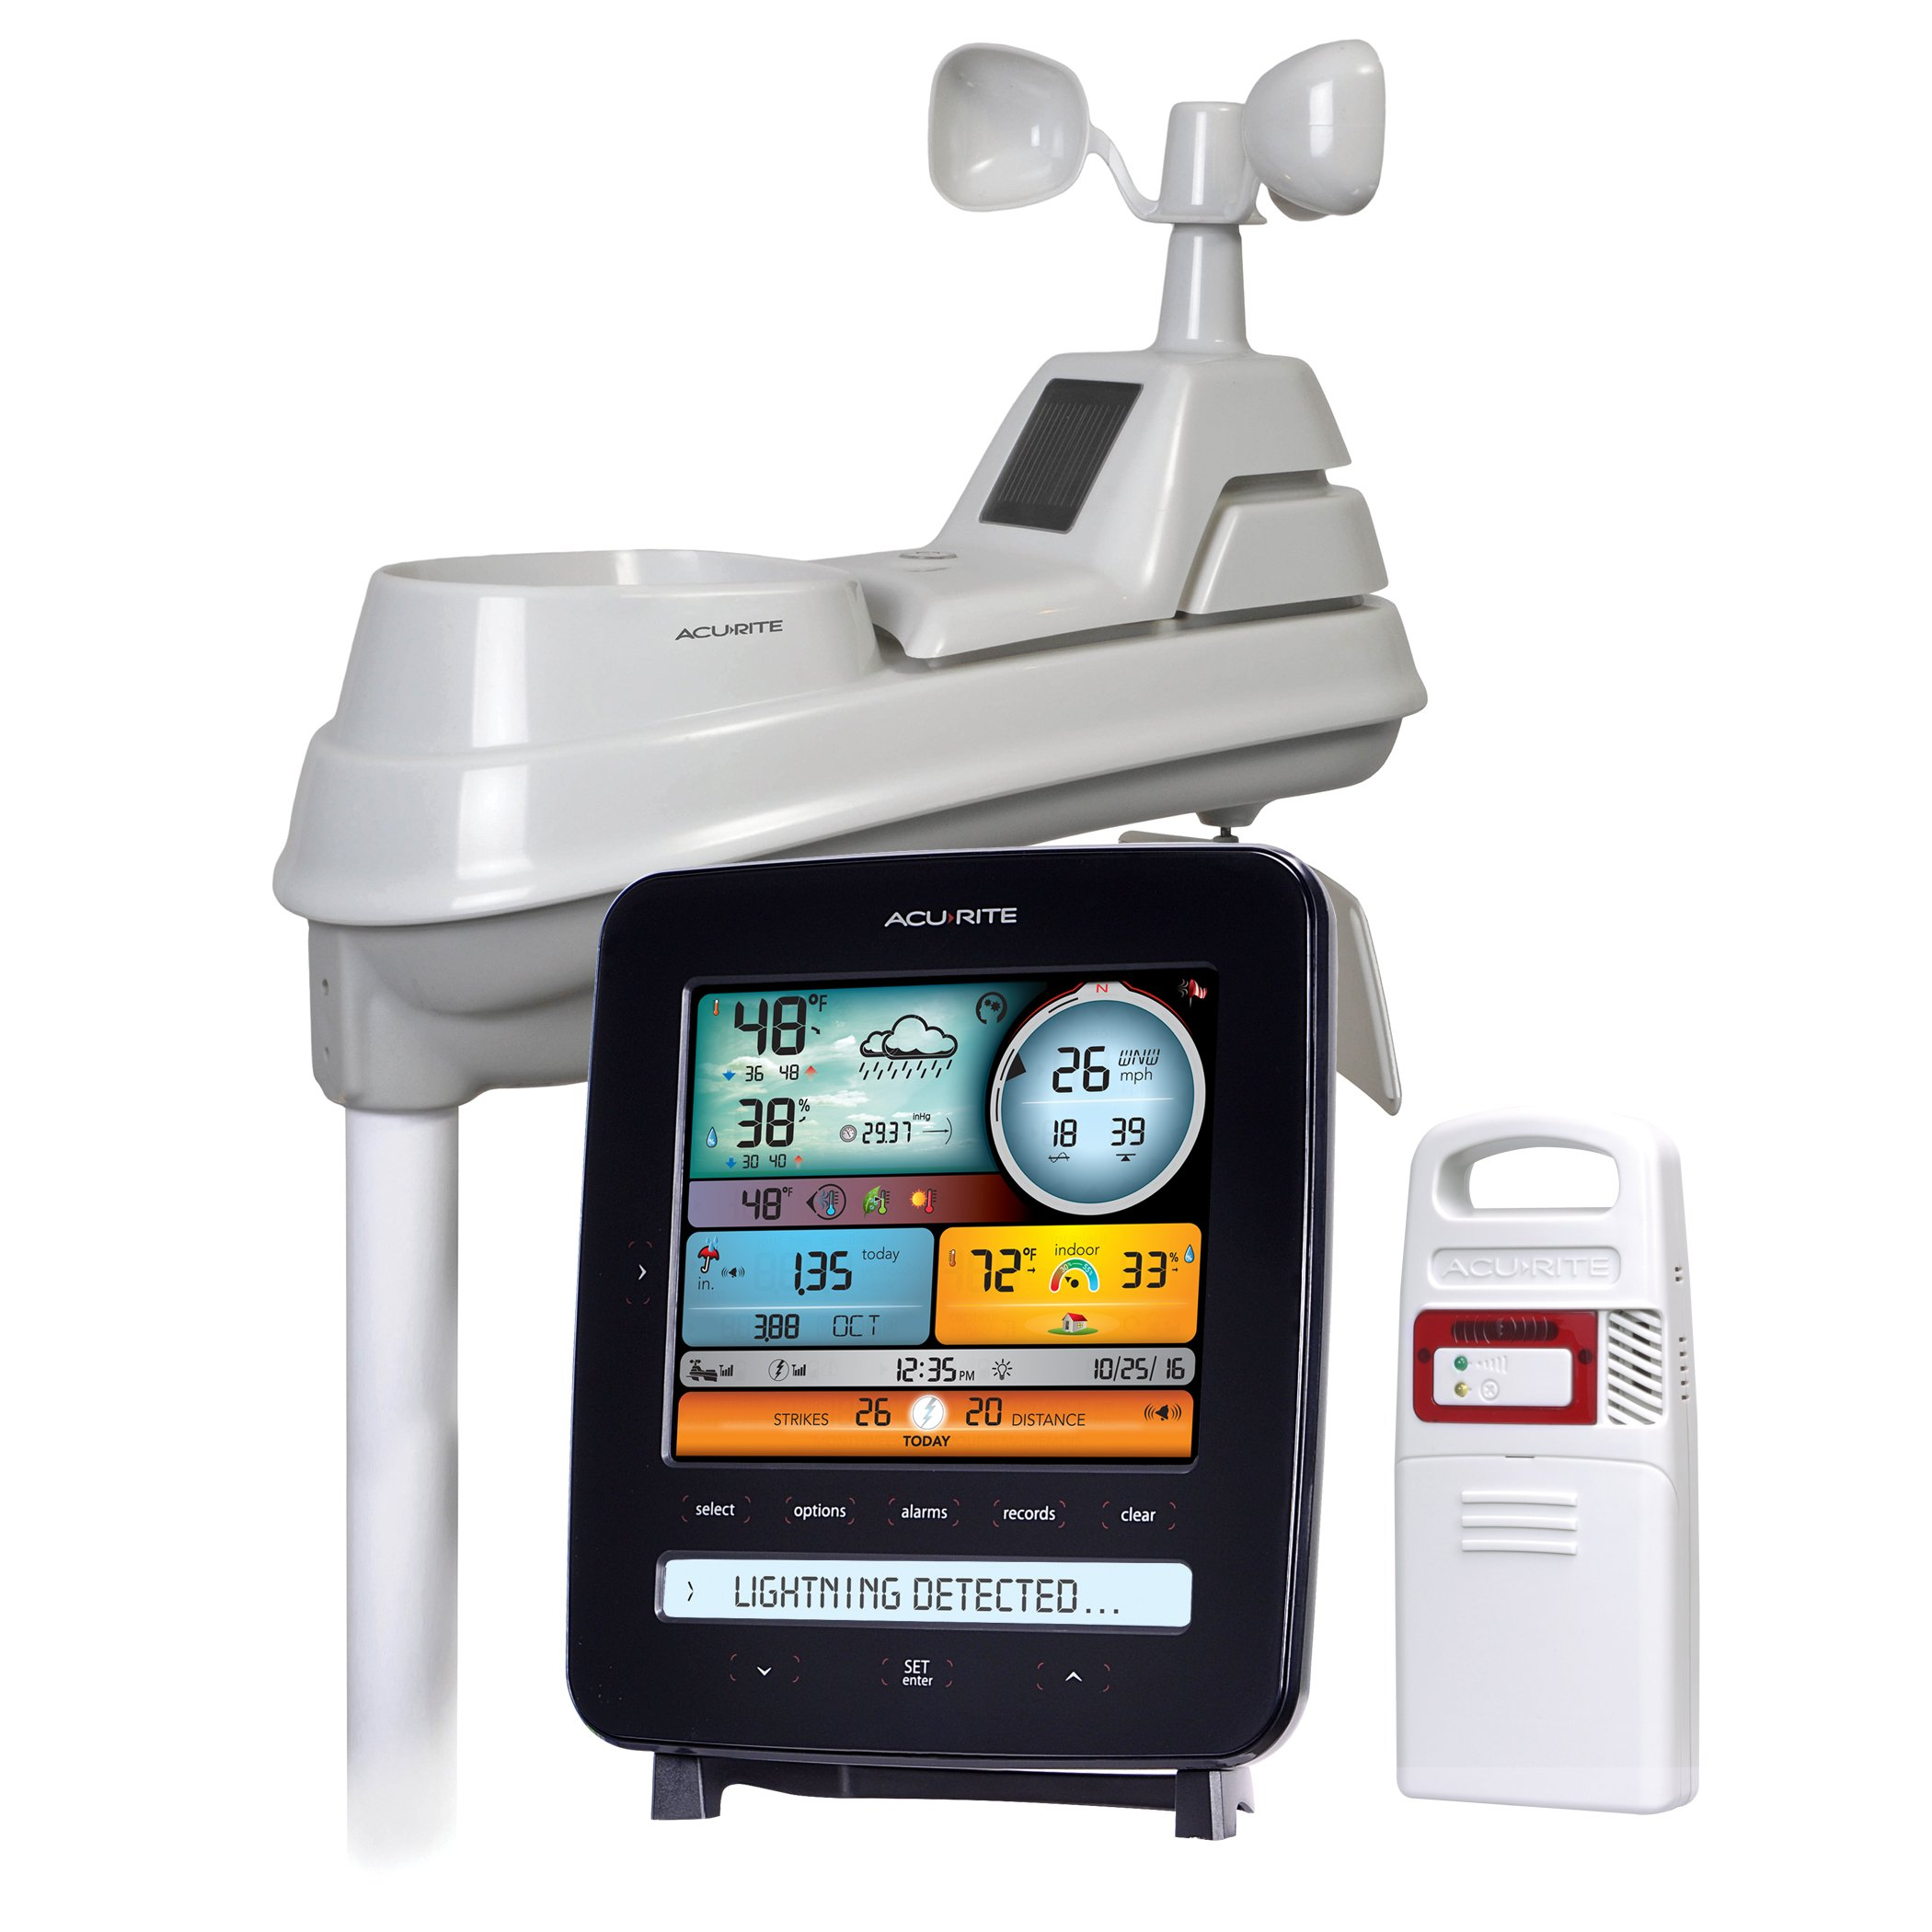 AcuRite 01022M Pro Station with Lightning, Rain, Wind, Temperature, Humidity and Weather Ticker, Detection by AcuRite